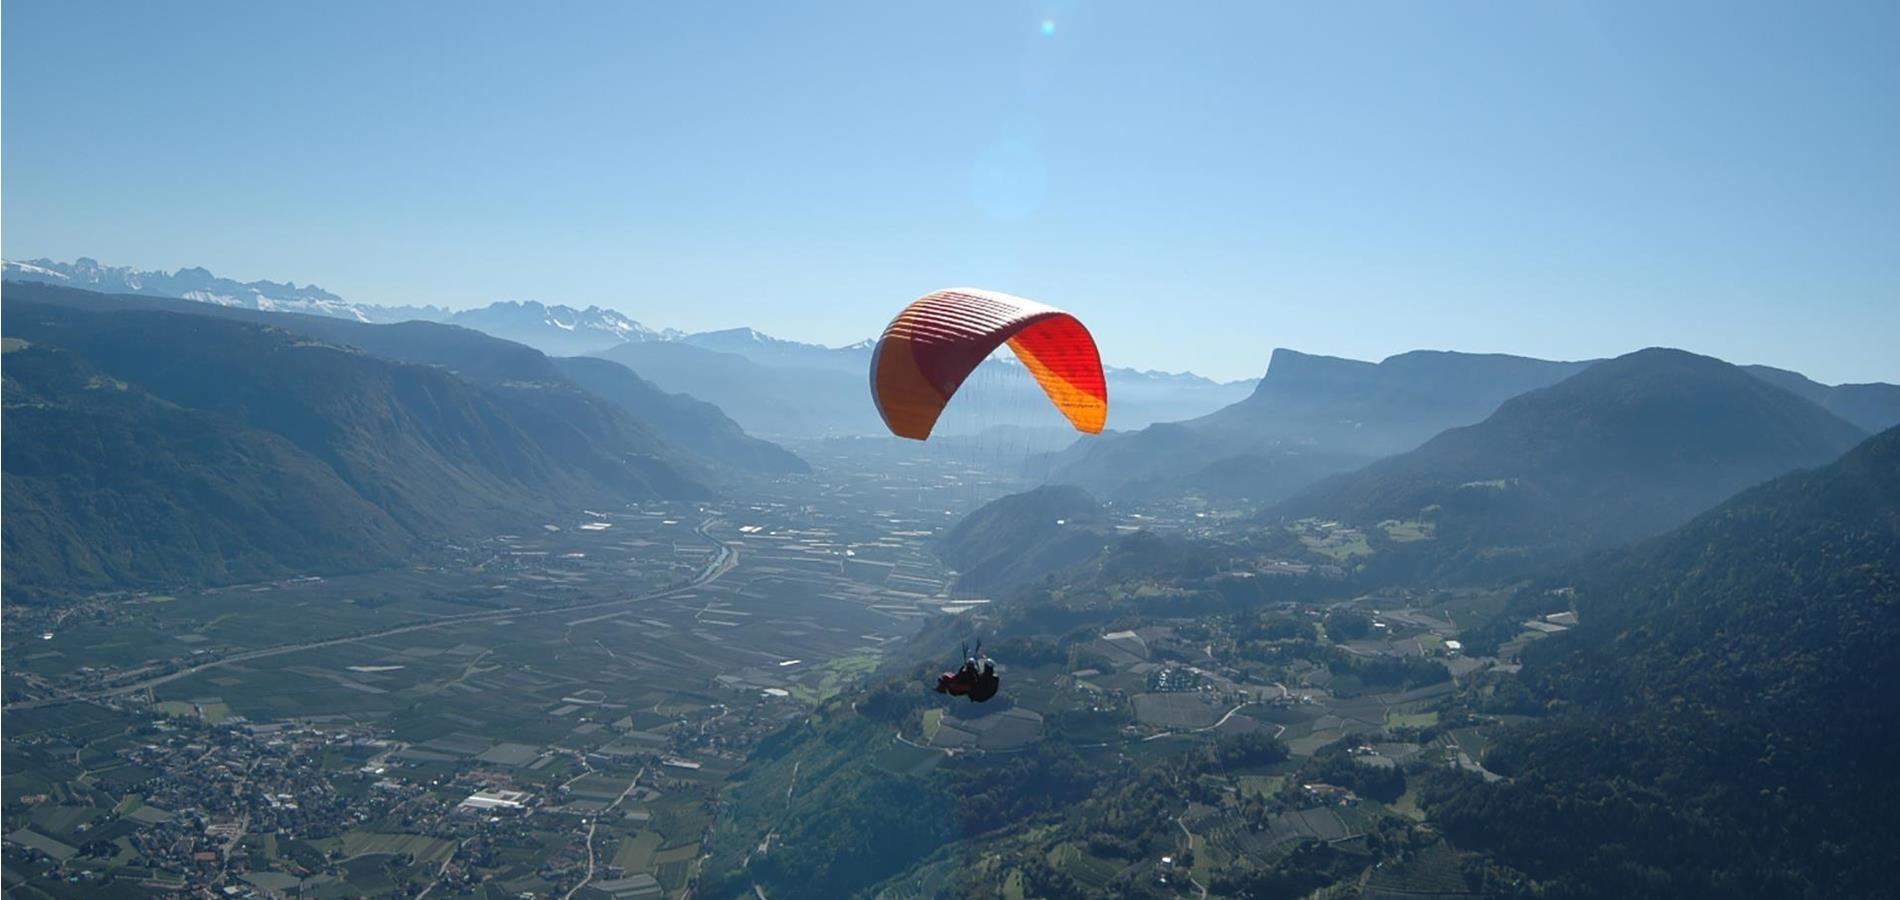 Leisure and Sports Activities in Lana and Surroundings near Merano